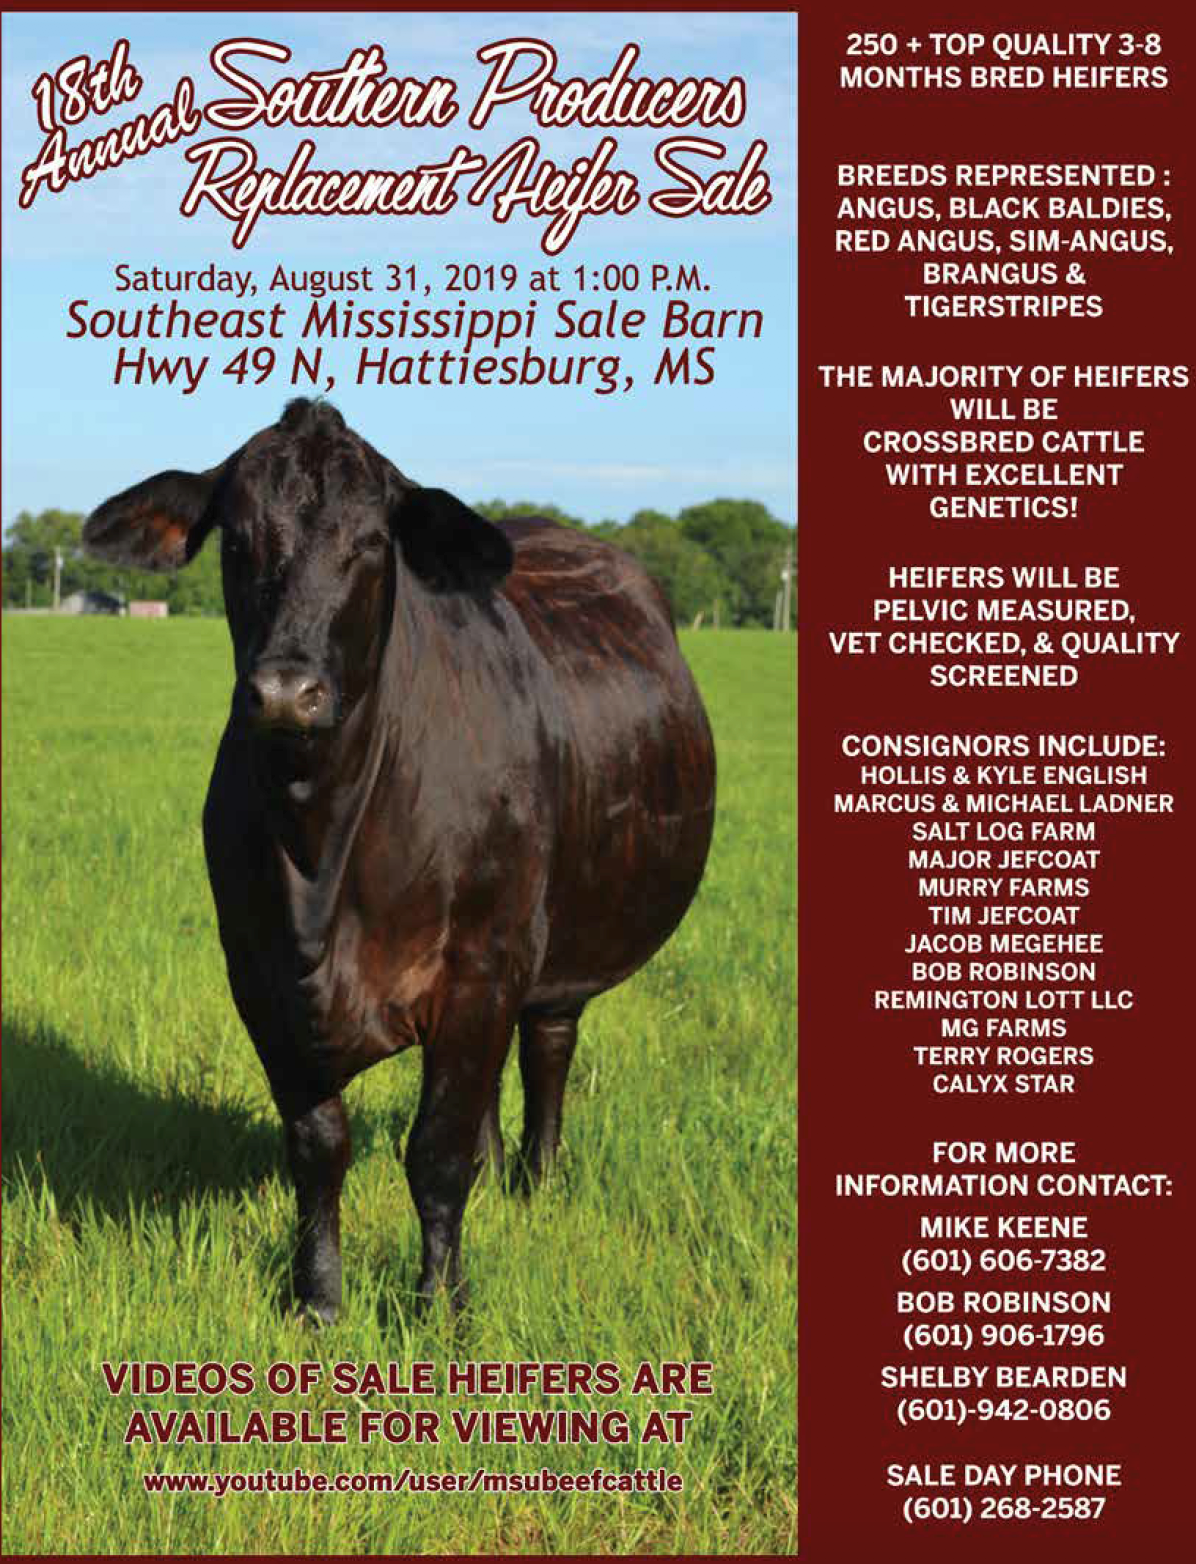 Southern Producers Replacement Heifer Sale